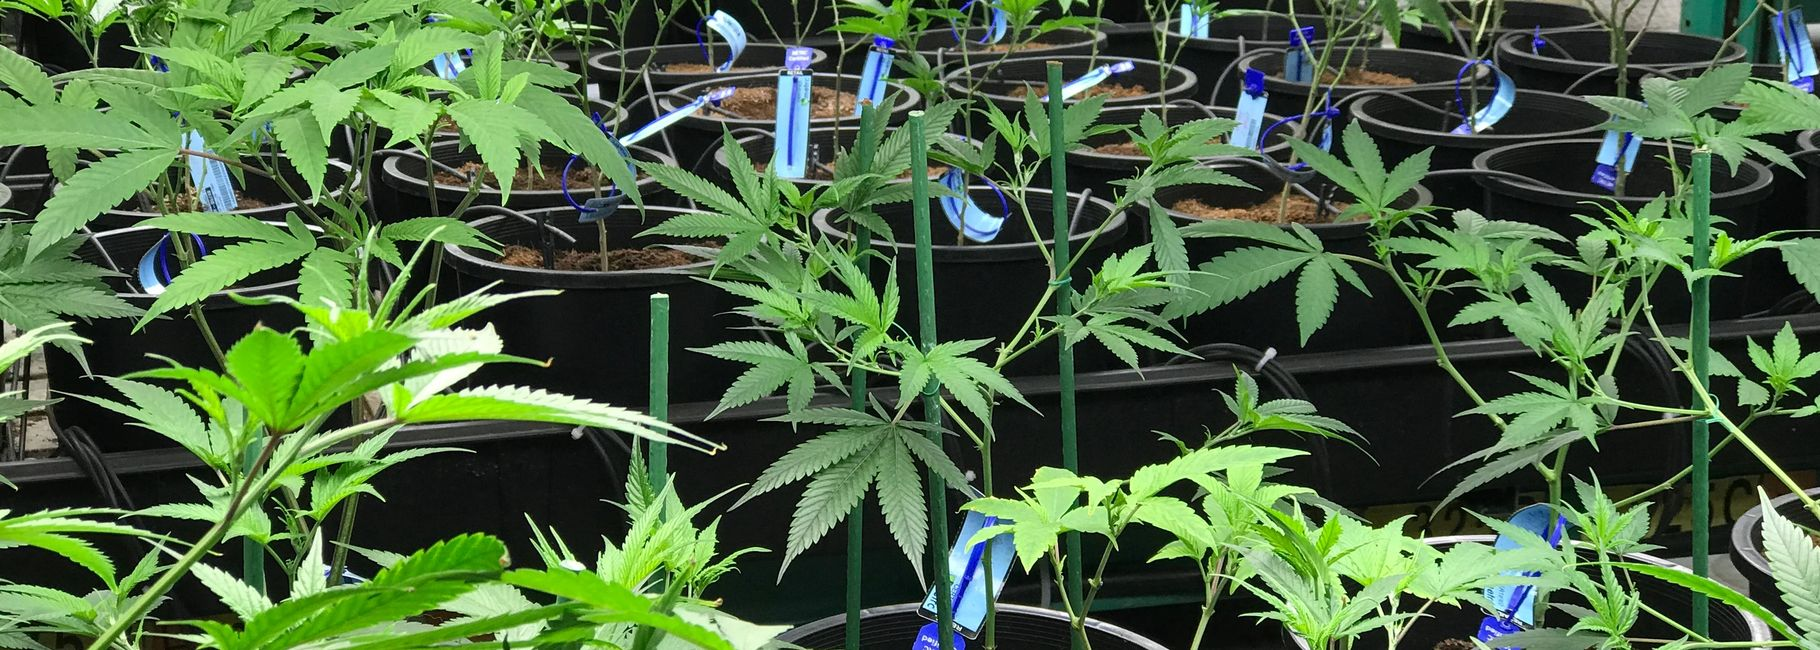 Cannabis plants in growing facility.